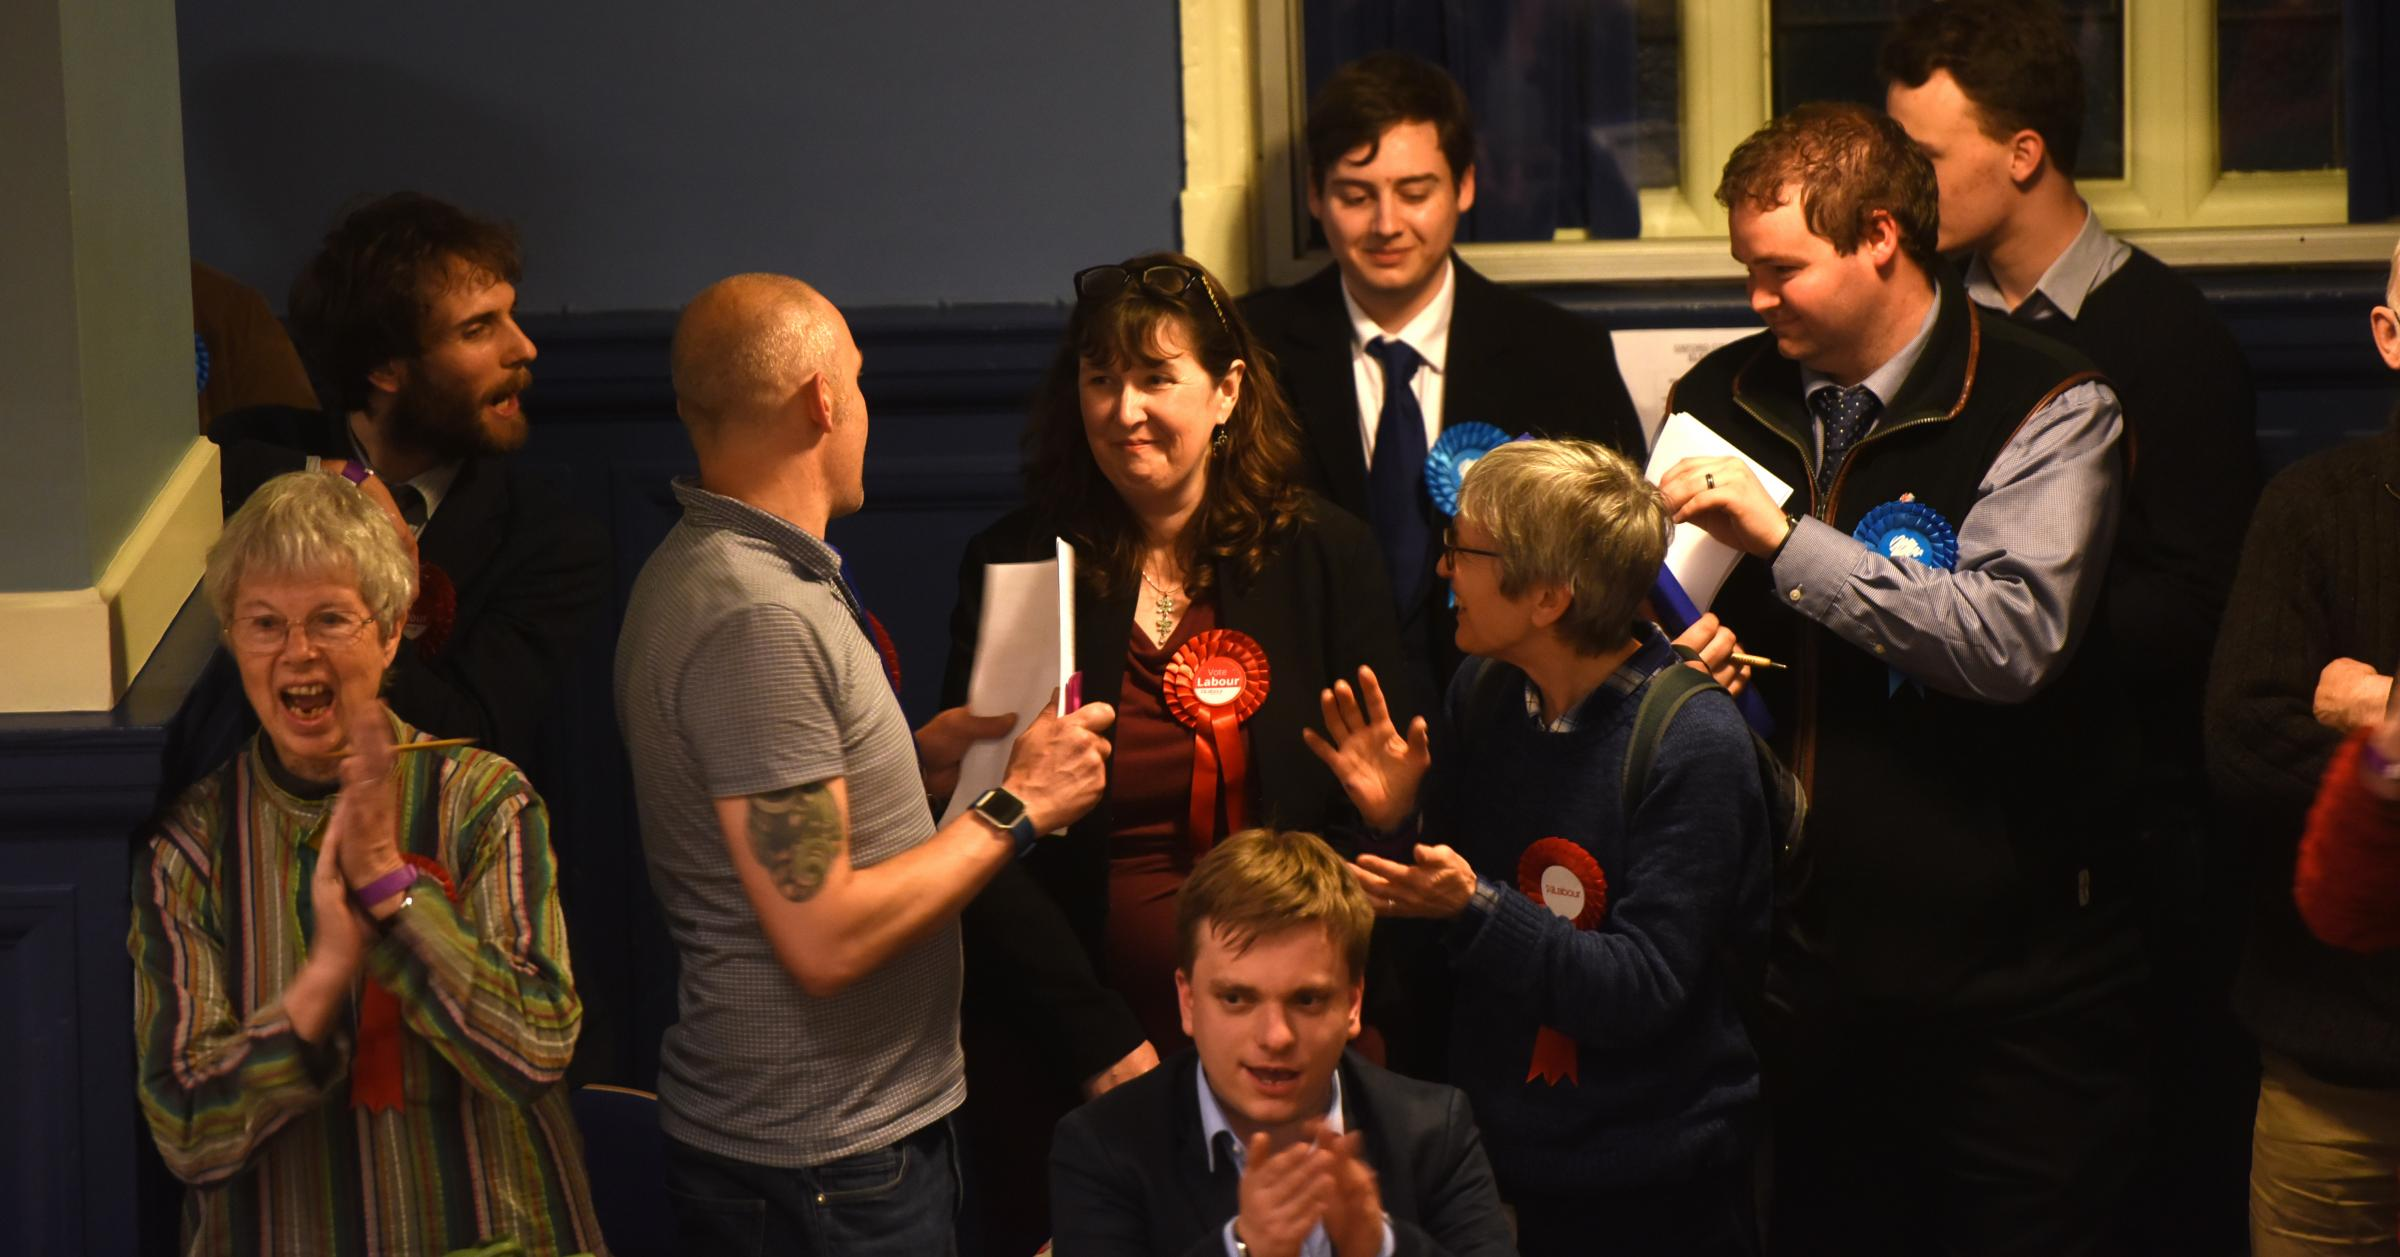 ELECTION 2018: Drama as Torie's grip across the Portsmouth area weakens